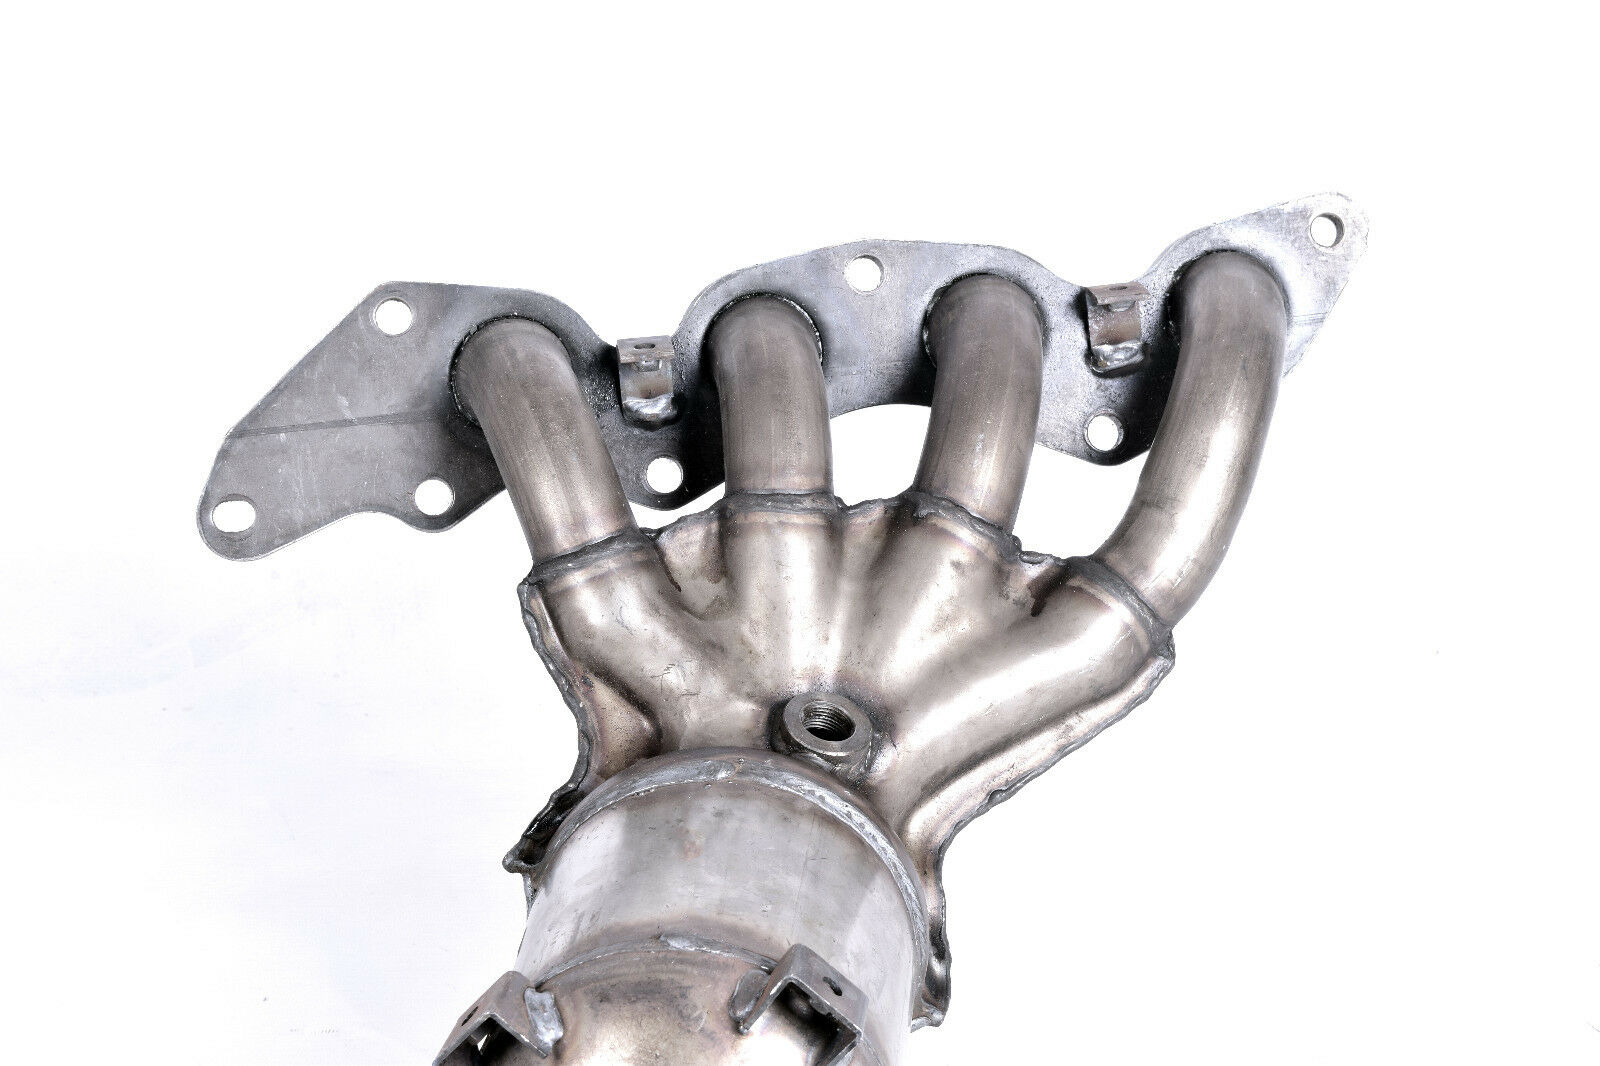 Details about FORD FOCUS & C-MAX VOLVO S40 V50 1 8 & 2 0 (09/03-01/10)  CATALYTIC CONVERTER CAT